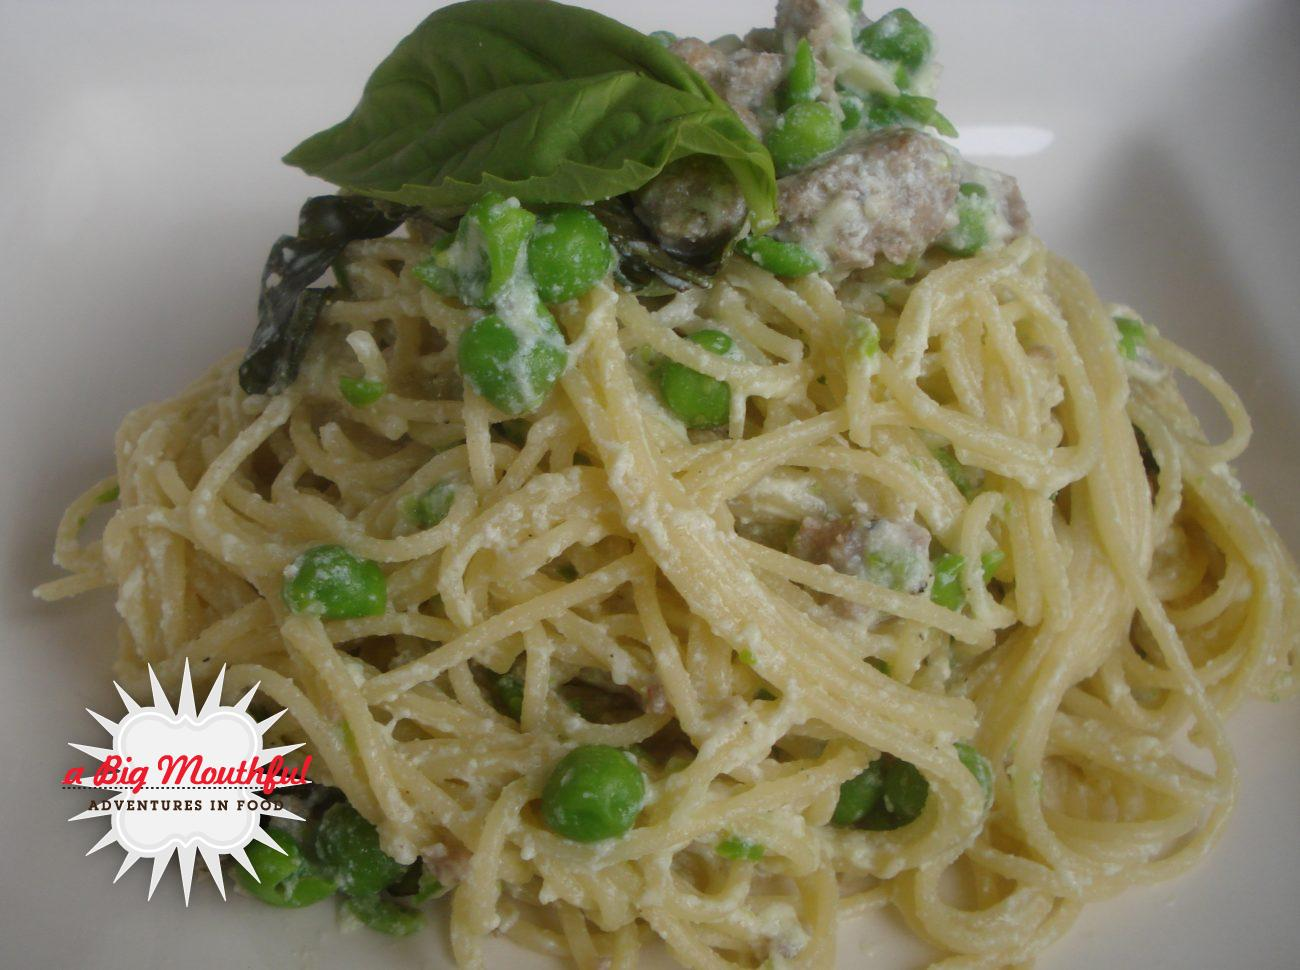 Tagliatelle with Smashed Peas, Sausage and Ricotta Cheese